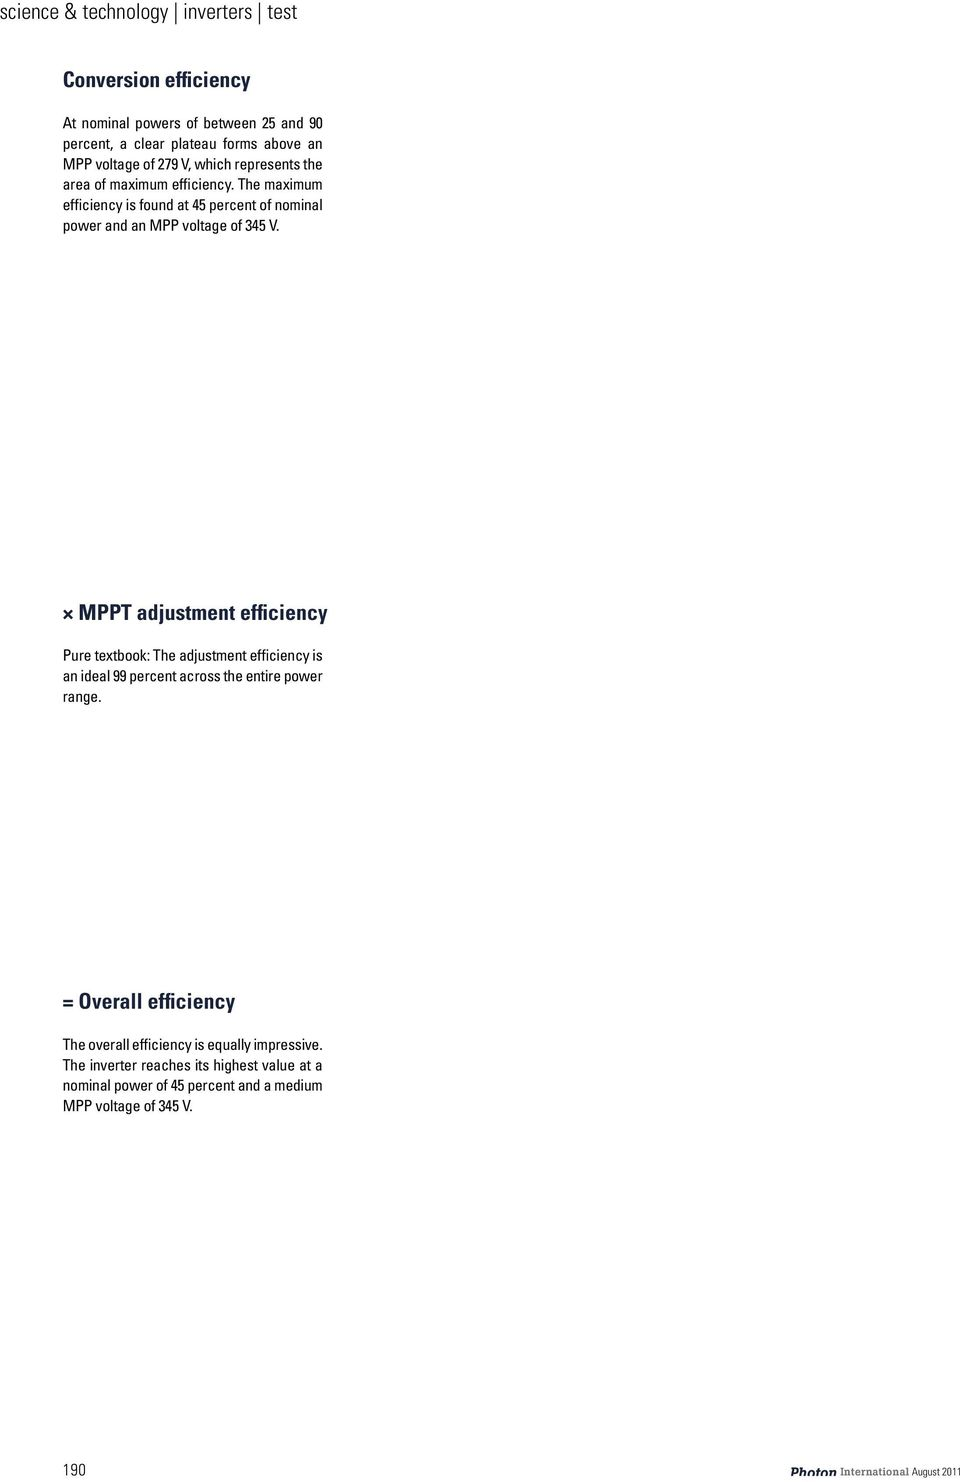 MPPT adjustment efficiency Pure textbook: The adjustment efficiency is an ideal 99 percent across the entire power range.